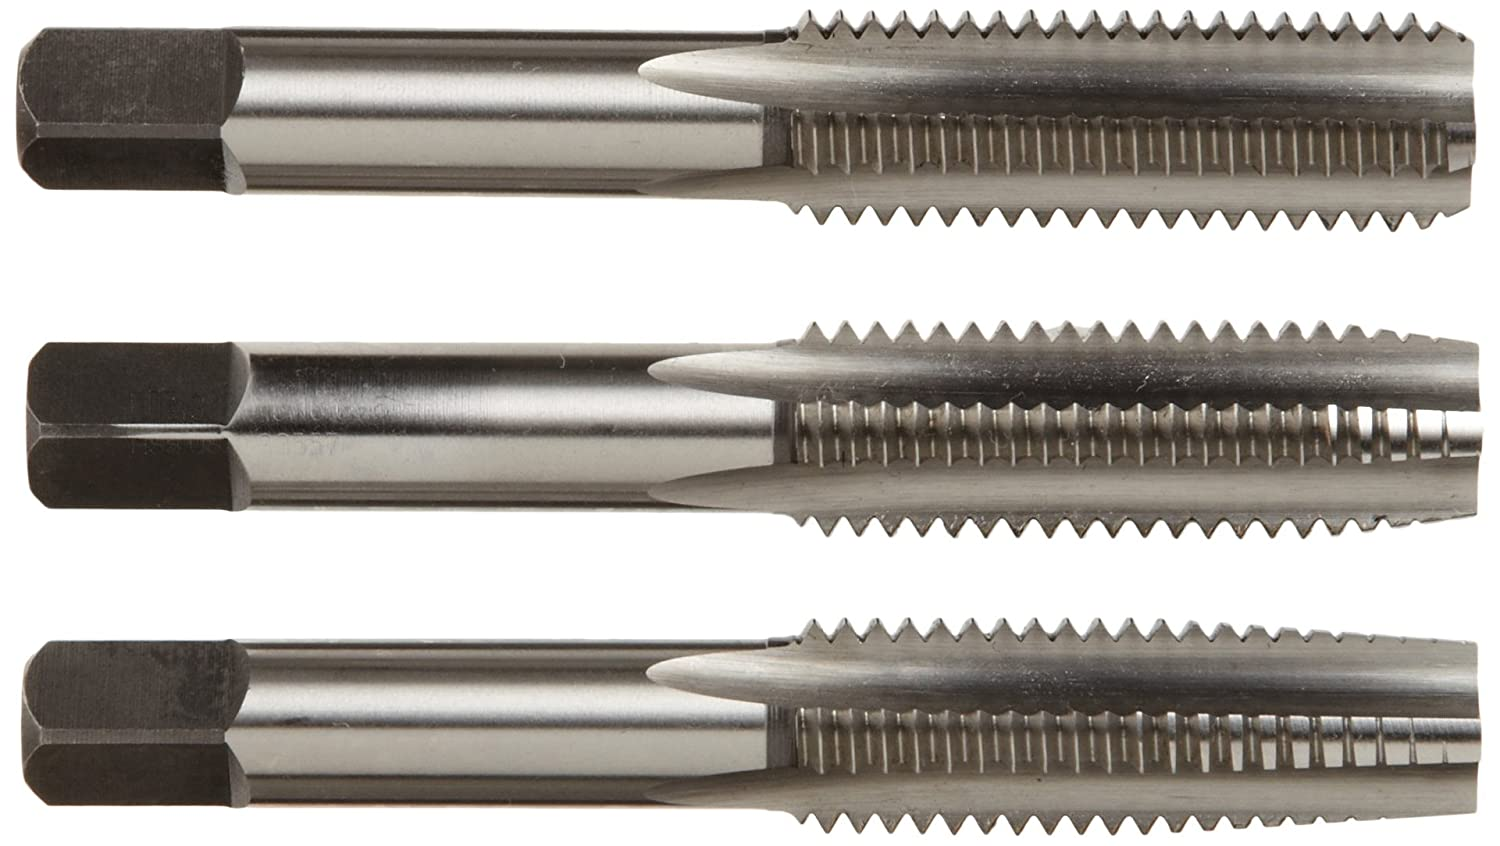 Round with Square End Pack of 1 Spiral Flute 2//0 Size Finish Bright Uncoated Drill America DWRRTPS Series Qualtech High-Speed Steel Taper Pin Reamer